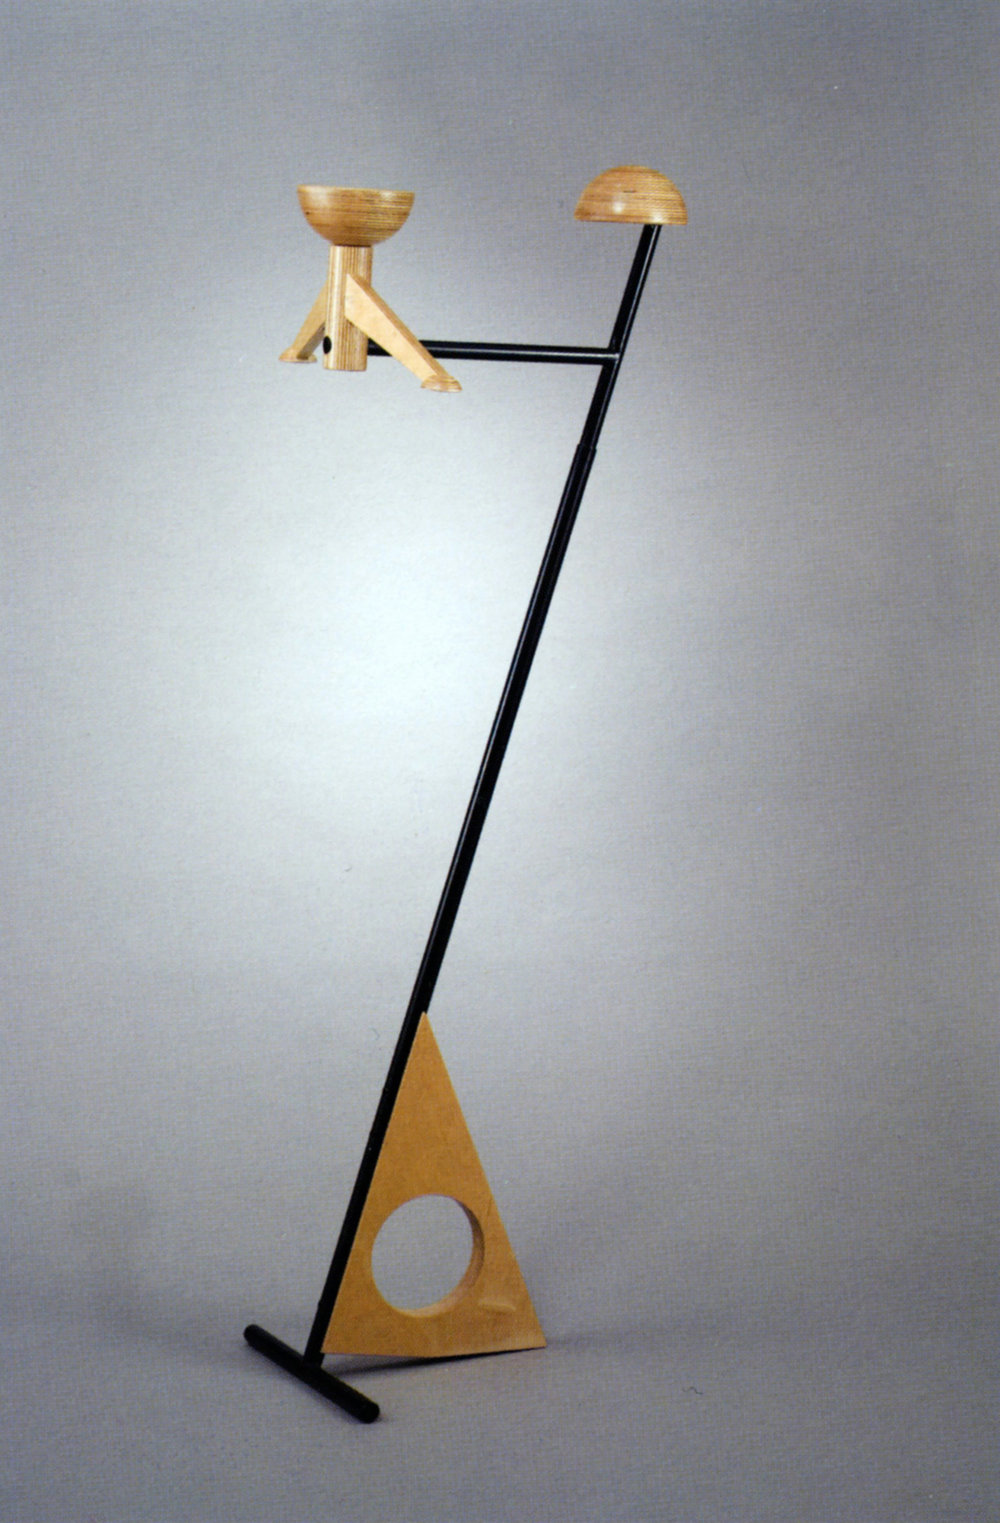 Paul TUTTLE (fabricated by Bud TULLIS)   Clothes valet   Unknown date; c. 1982-2001